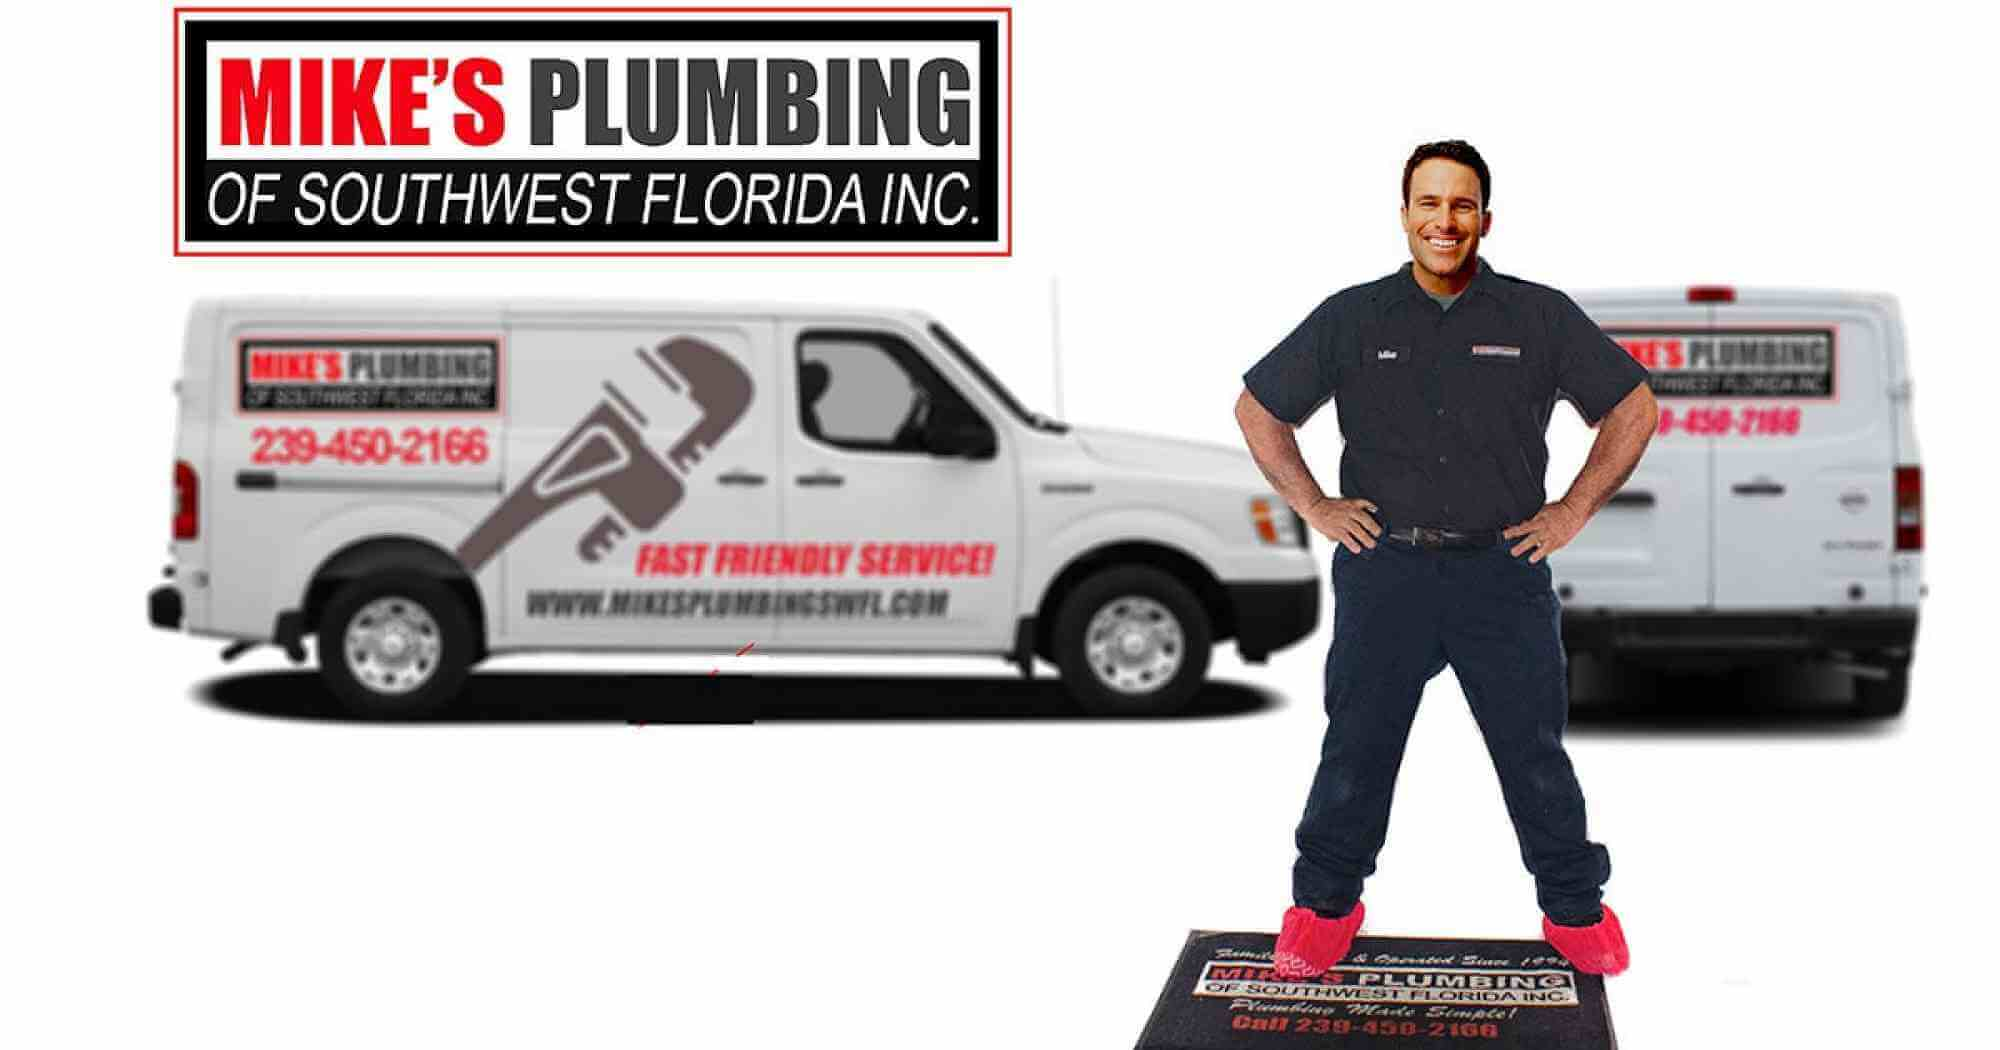 Mike's Plumbing of Southwest Florida